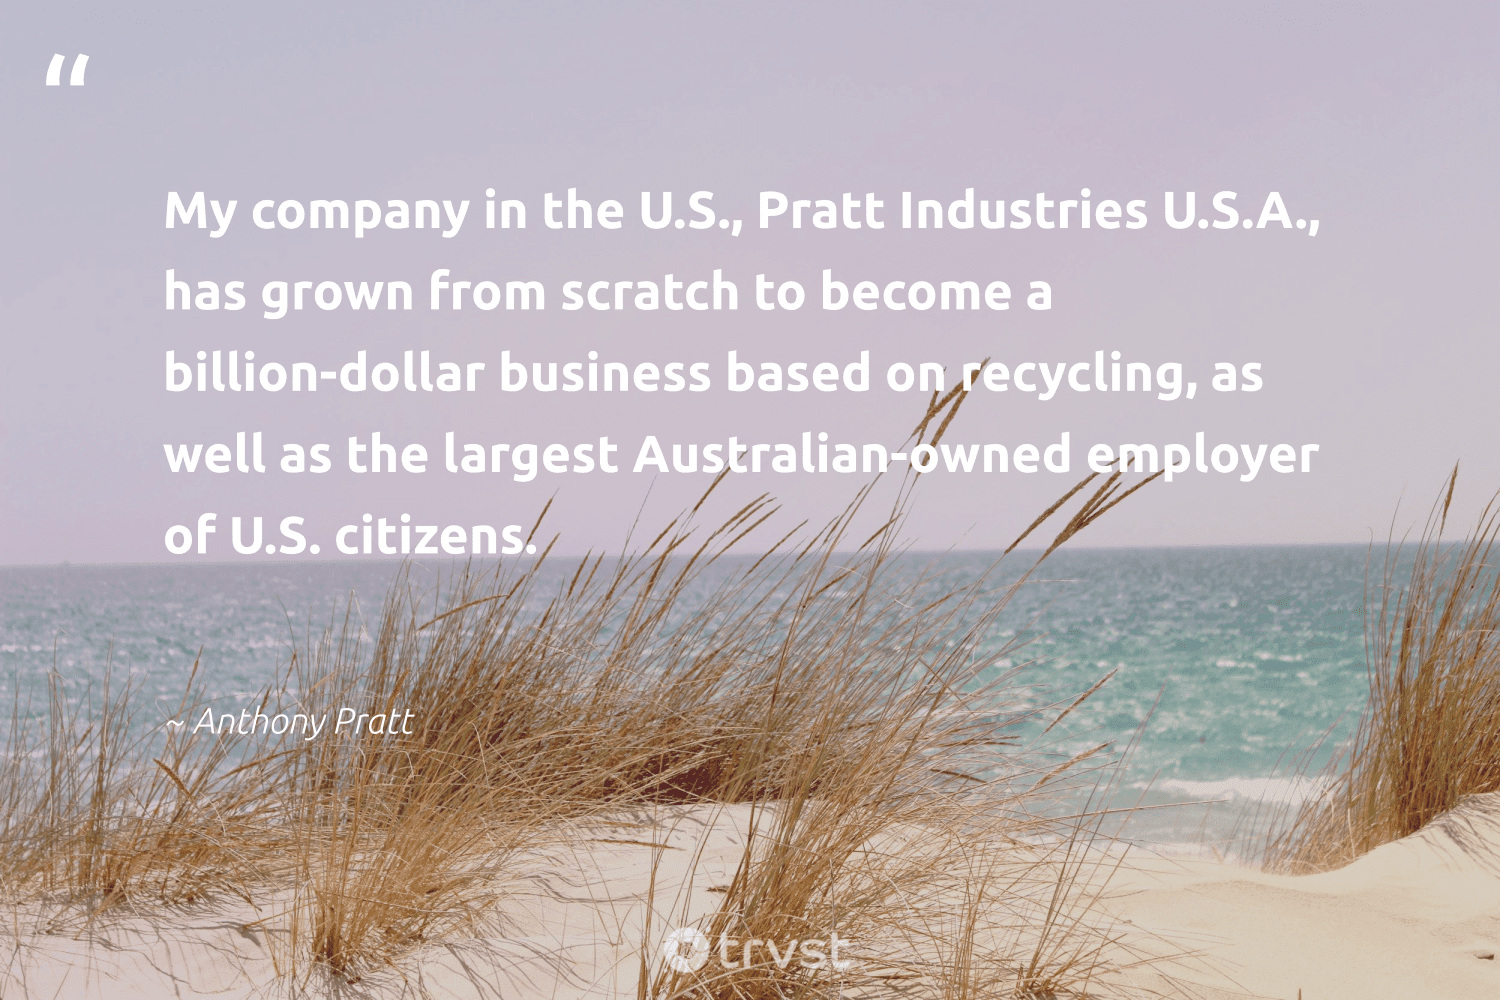 """""""My company in the U.S., Pratt Industries U.S.A., has grown from scratch to become a billion-dollar business based on recycling, as well as the largest Australian-owned employer of U.S. citizens.""""  - Anthony Pratt #trvst #quotes #recycling #recycled #planetearthfirst #wastefree #takeaction #upcycling #environmentallyfriendly #betterfortheplanet #dosomething #reduce"""